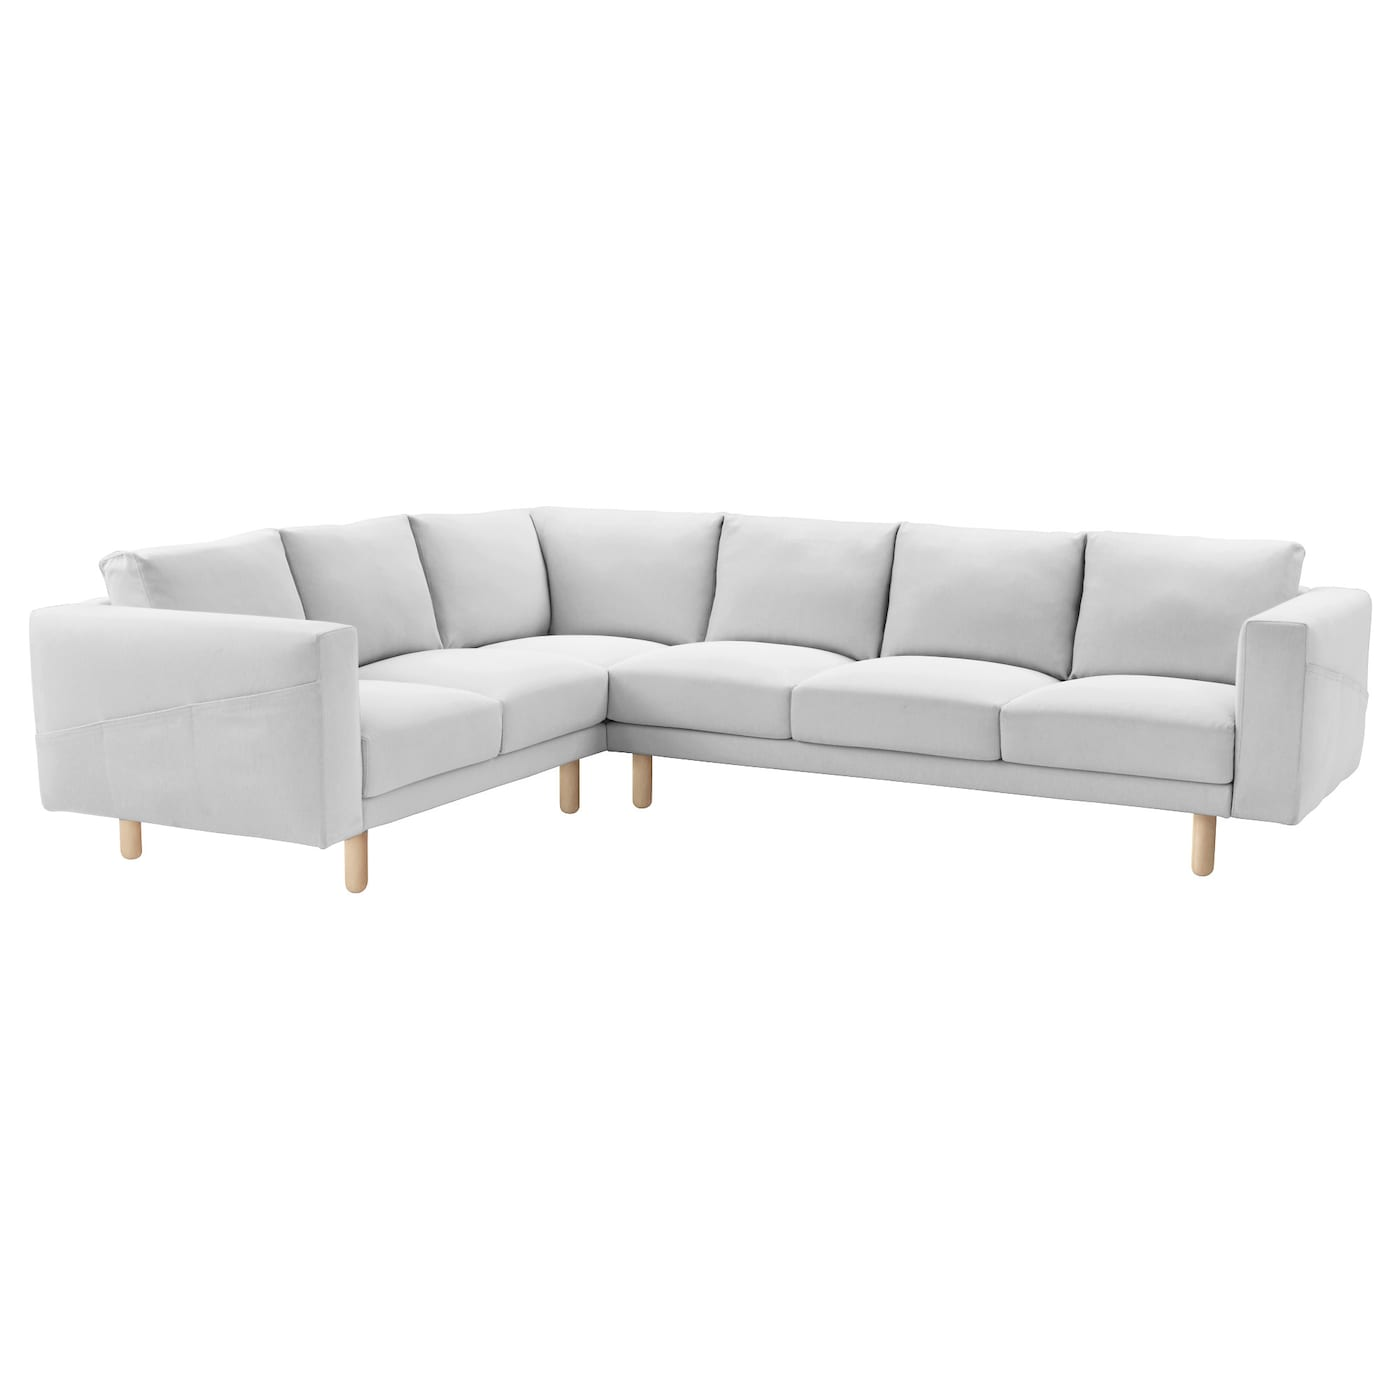 Norsborg corner sofa 2 3 3 2 finnsta white birch ikea for Ikea corner sofa